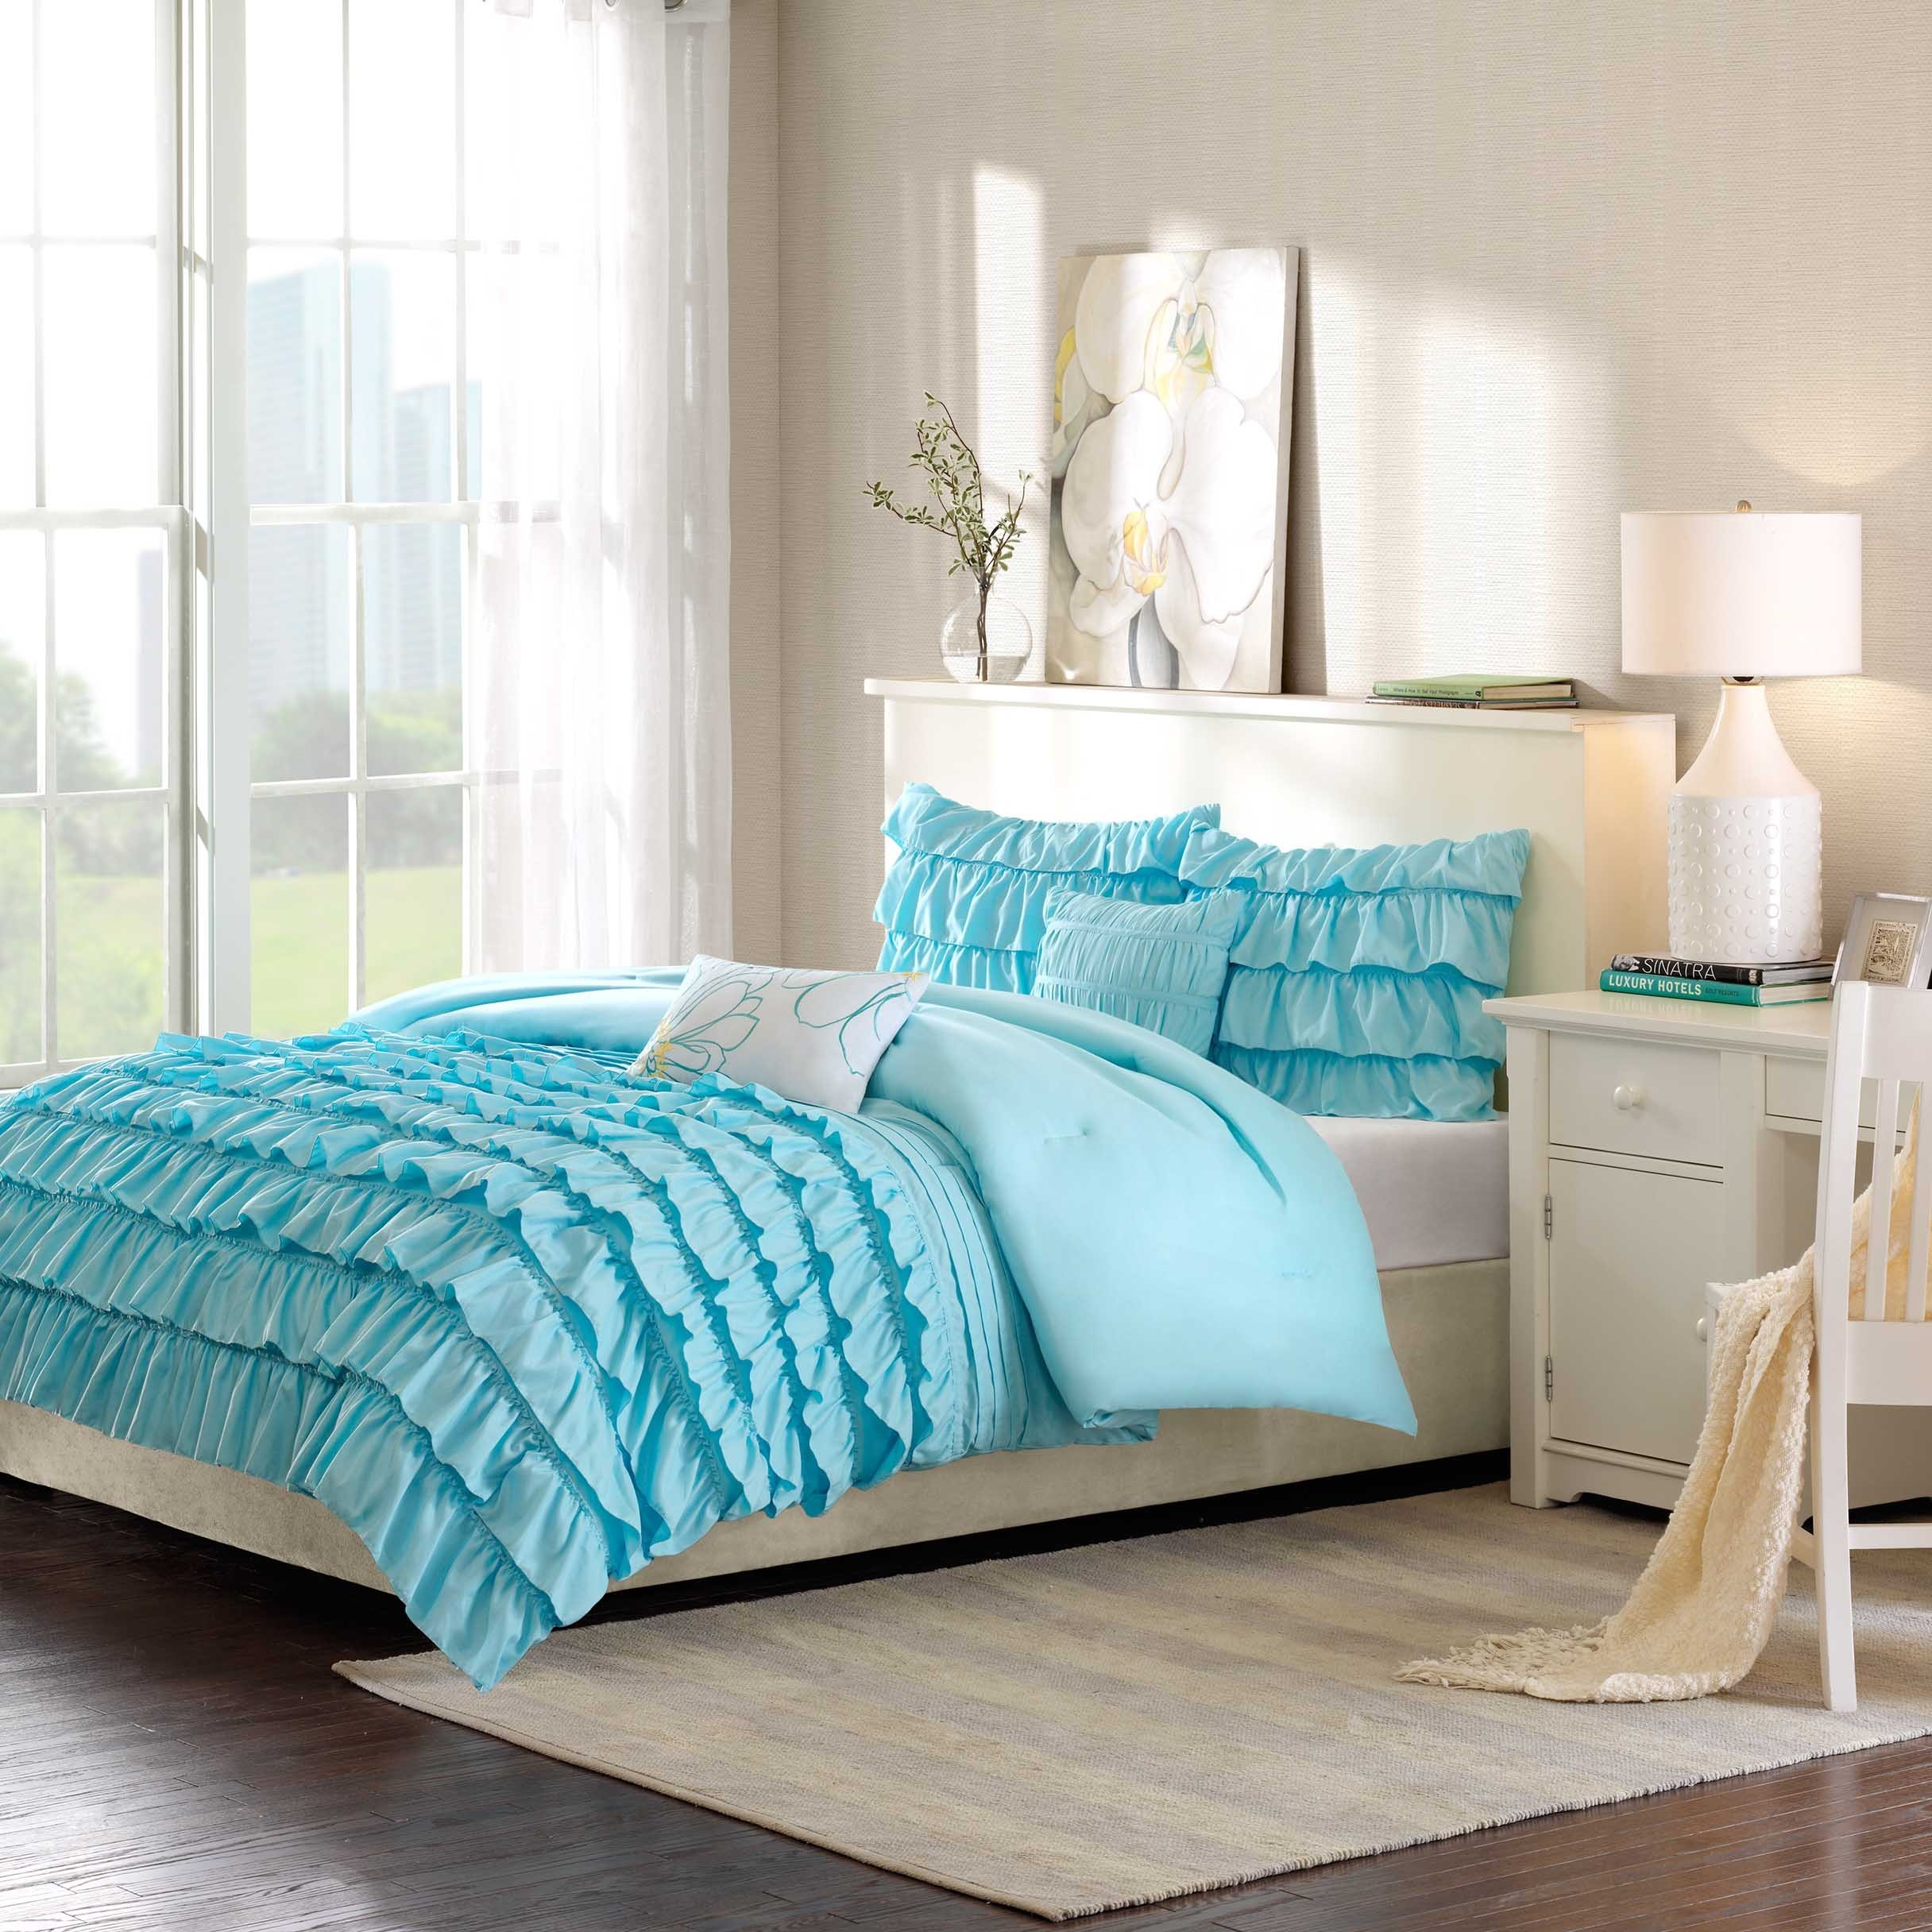 set morgan comforter pinterest ruffle olivia pin white reversible mizone